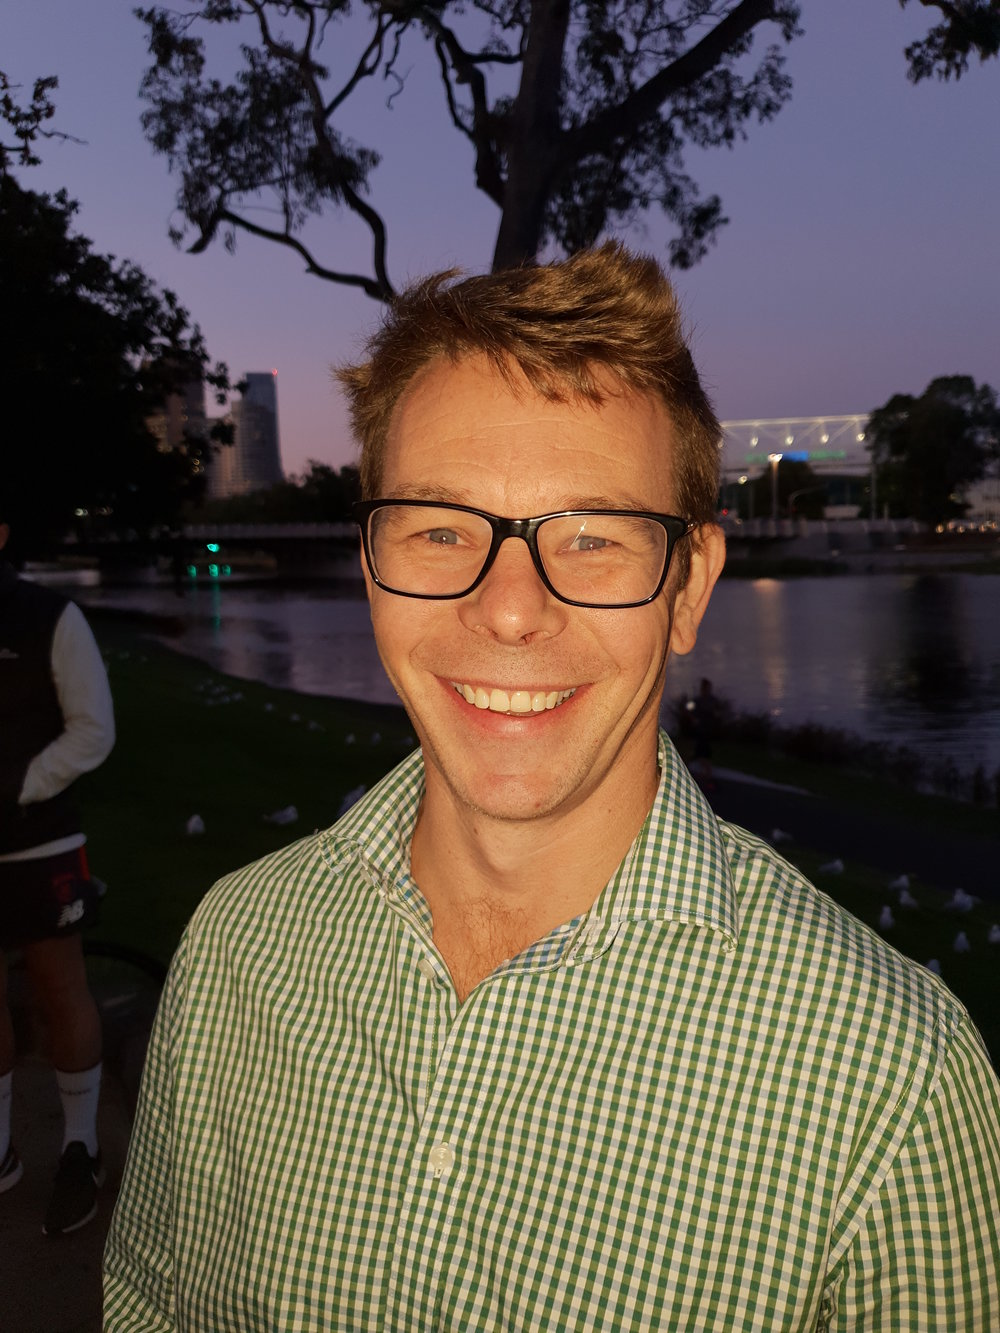 Jonathan Hopley - Committee Member   After some time away from the Club in Bendigo Jonathan has returned to add fitness, speed and skill to the 2nds midfield. He assists the Committee where required, with player recruitment and social functions.